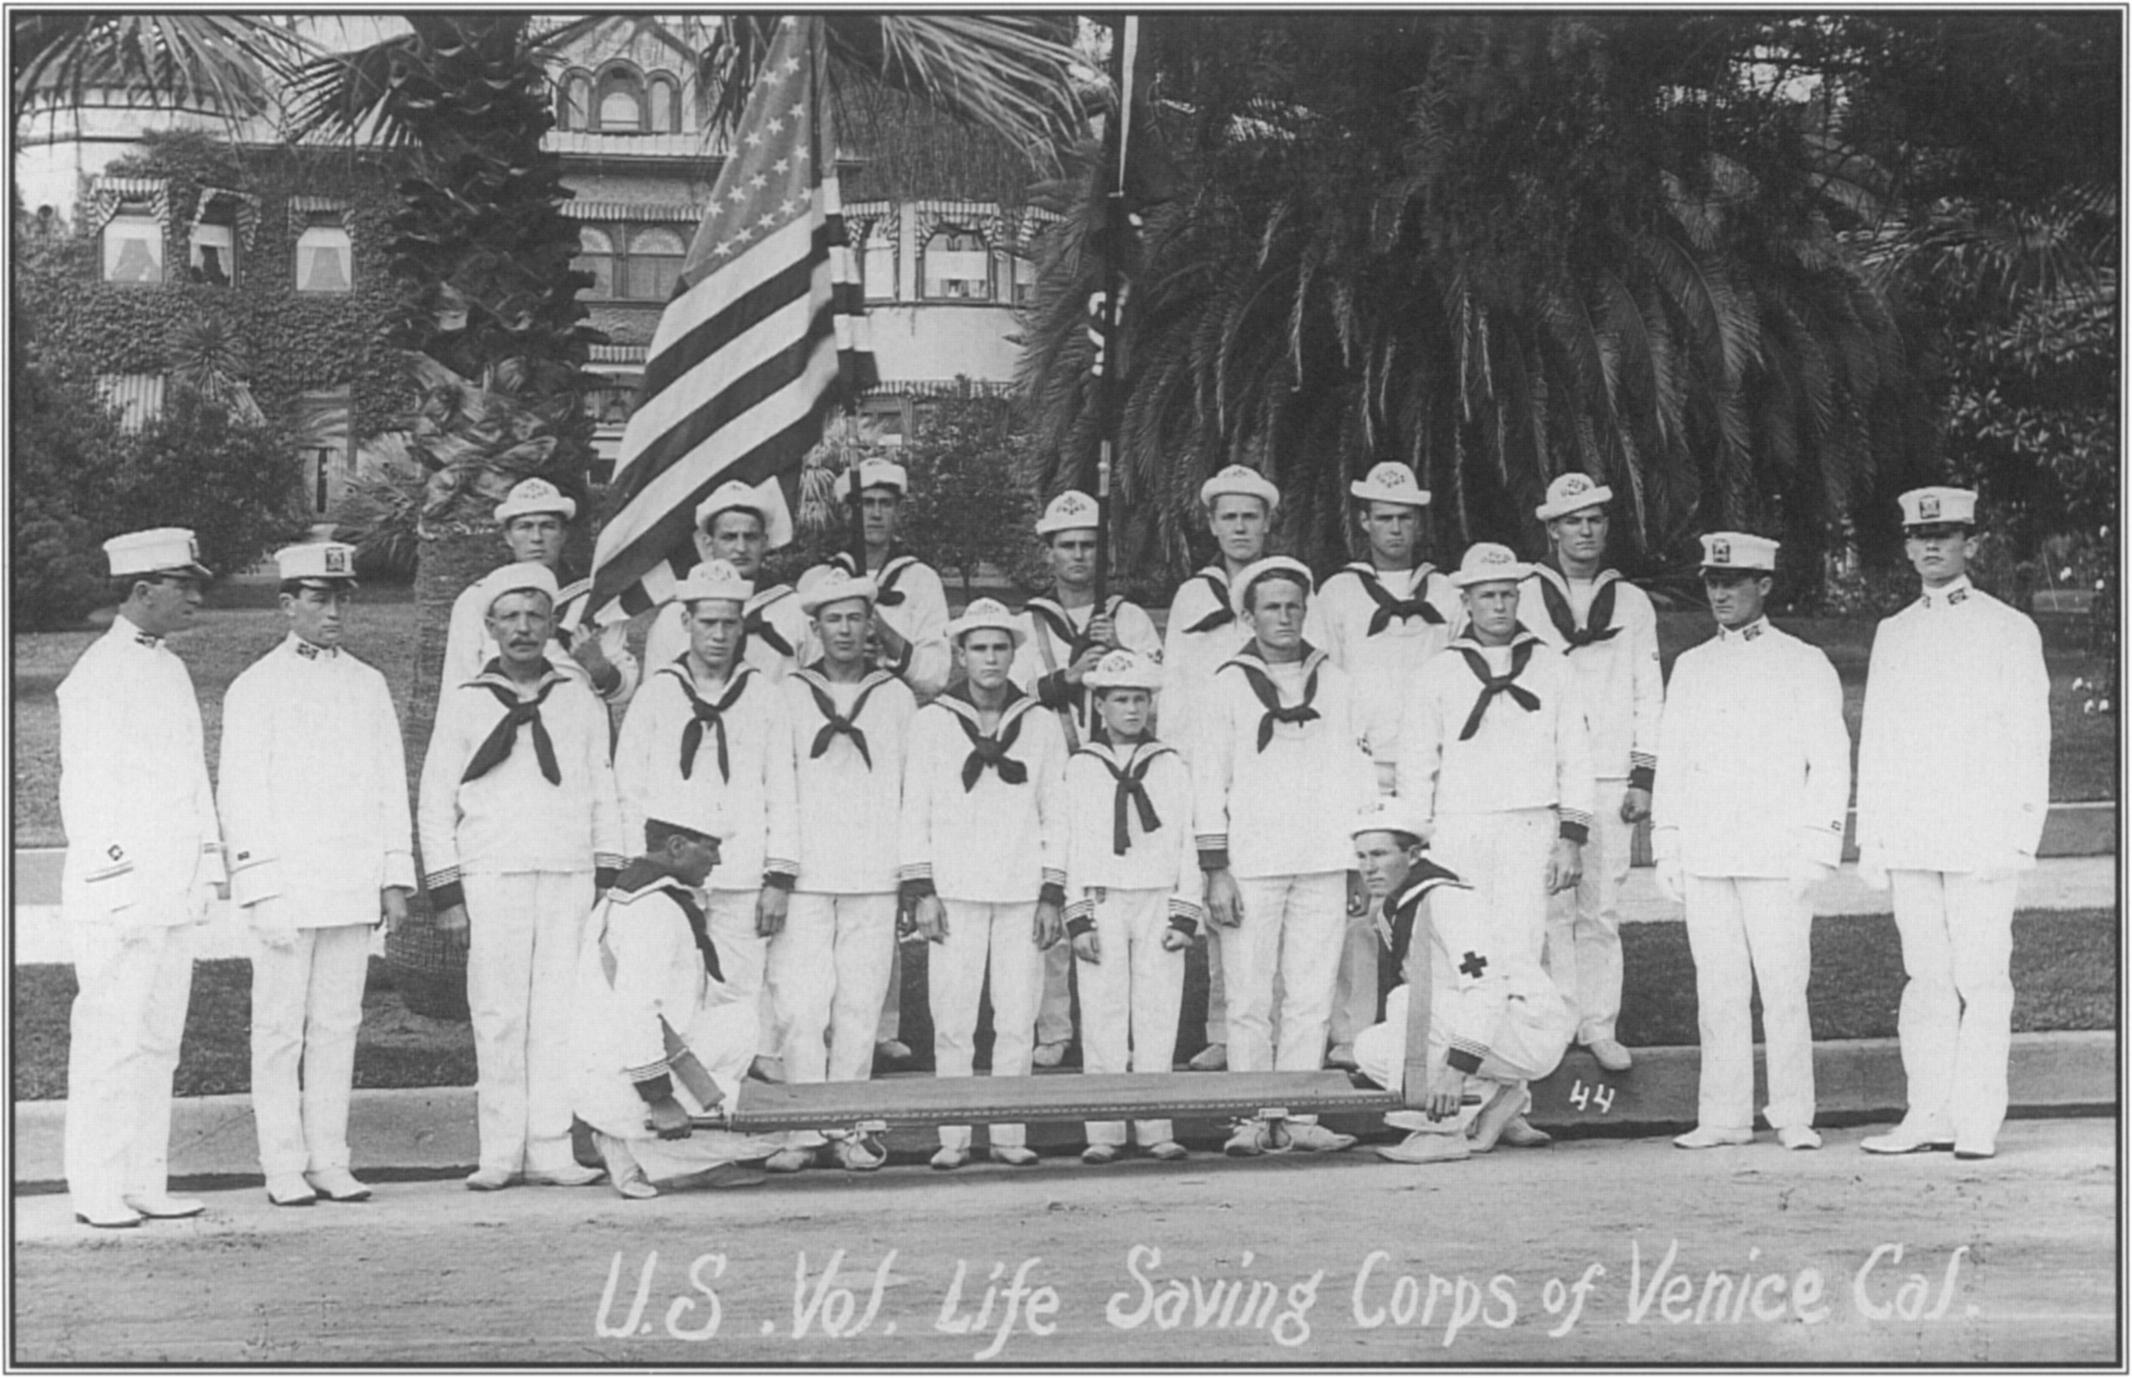 Deservedly proud of the U.S. Volunteer Life Saving  Corps of  Venice,  Captain  George  Freeth,  standing  at  the far left, reviews his crew in 1909. Courtesy Los Angeles County Lifeguard Trust Fund, Elayne Alexander Collection.